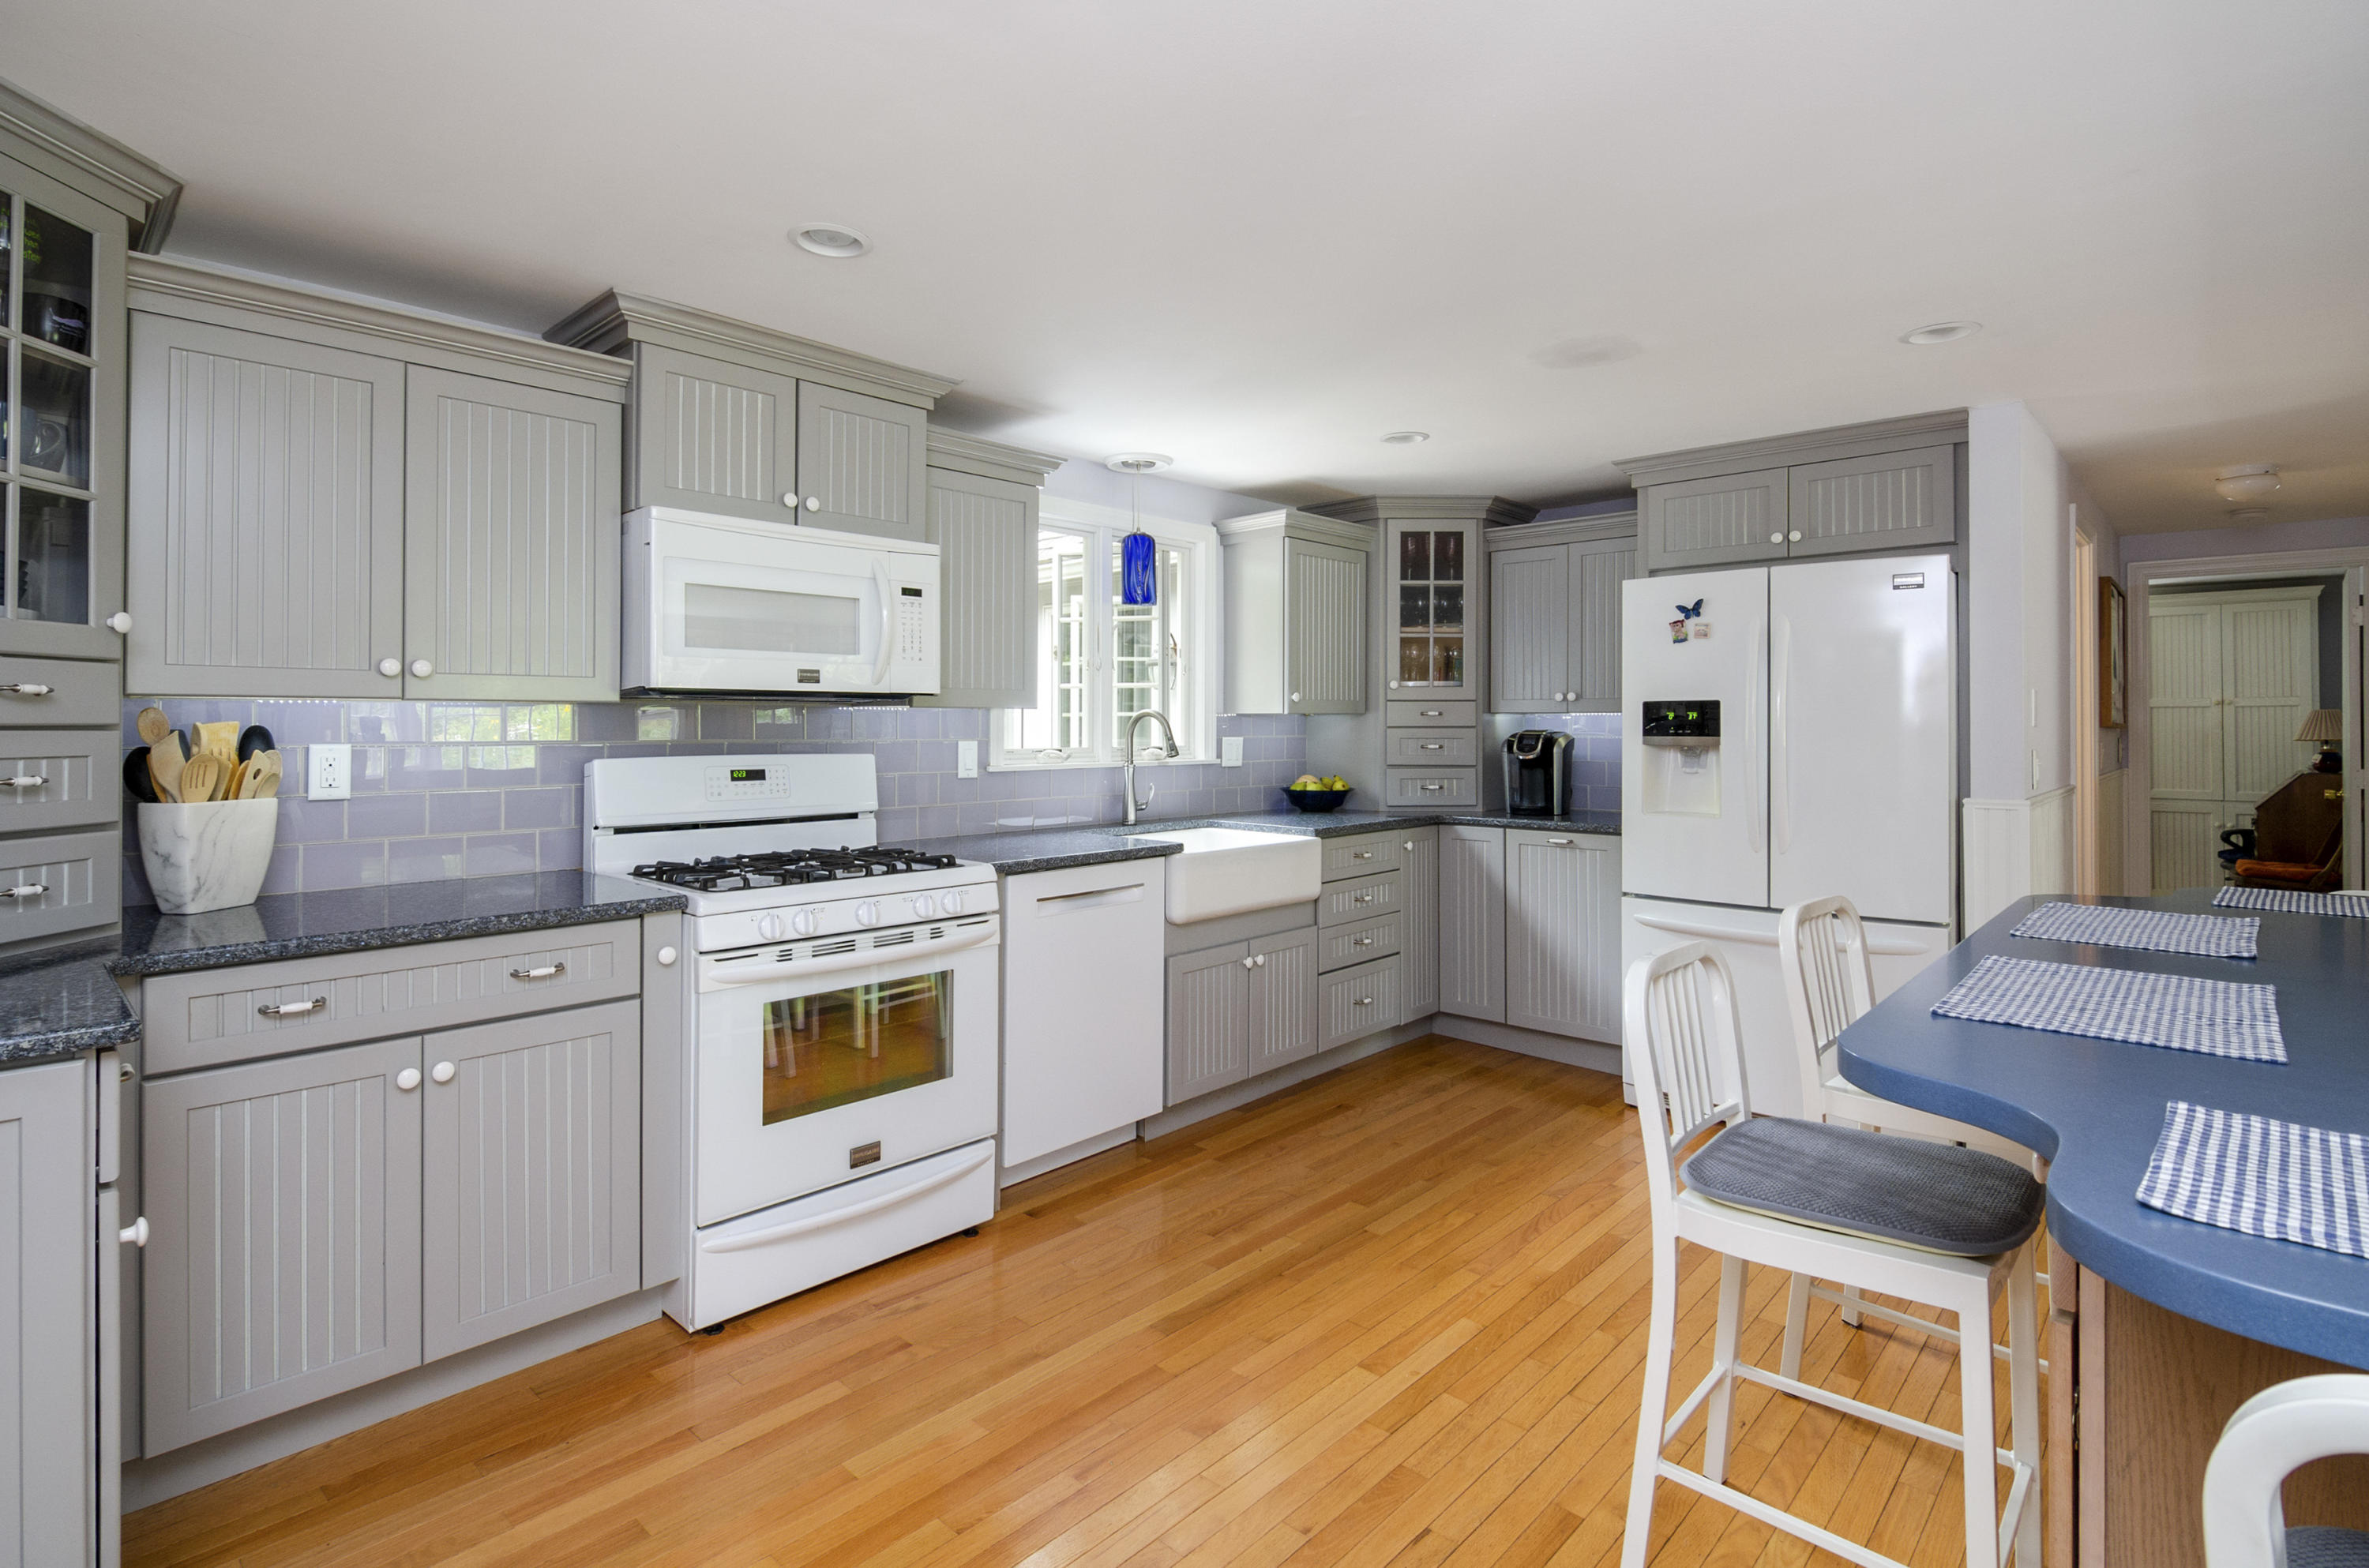 97 Bay View Drive, Brewster MA, 02631 sales details